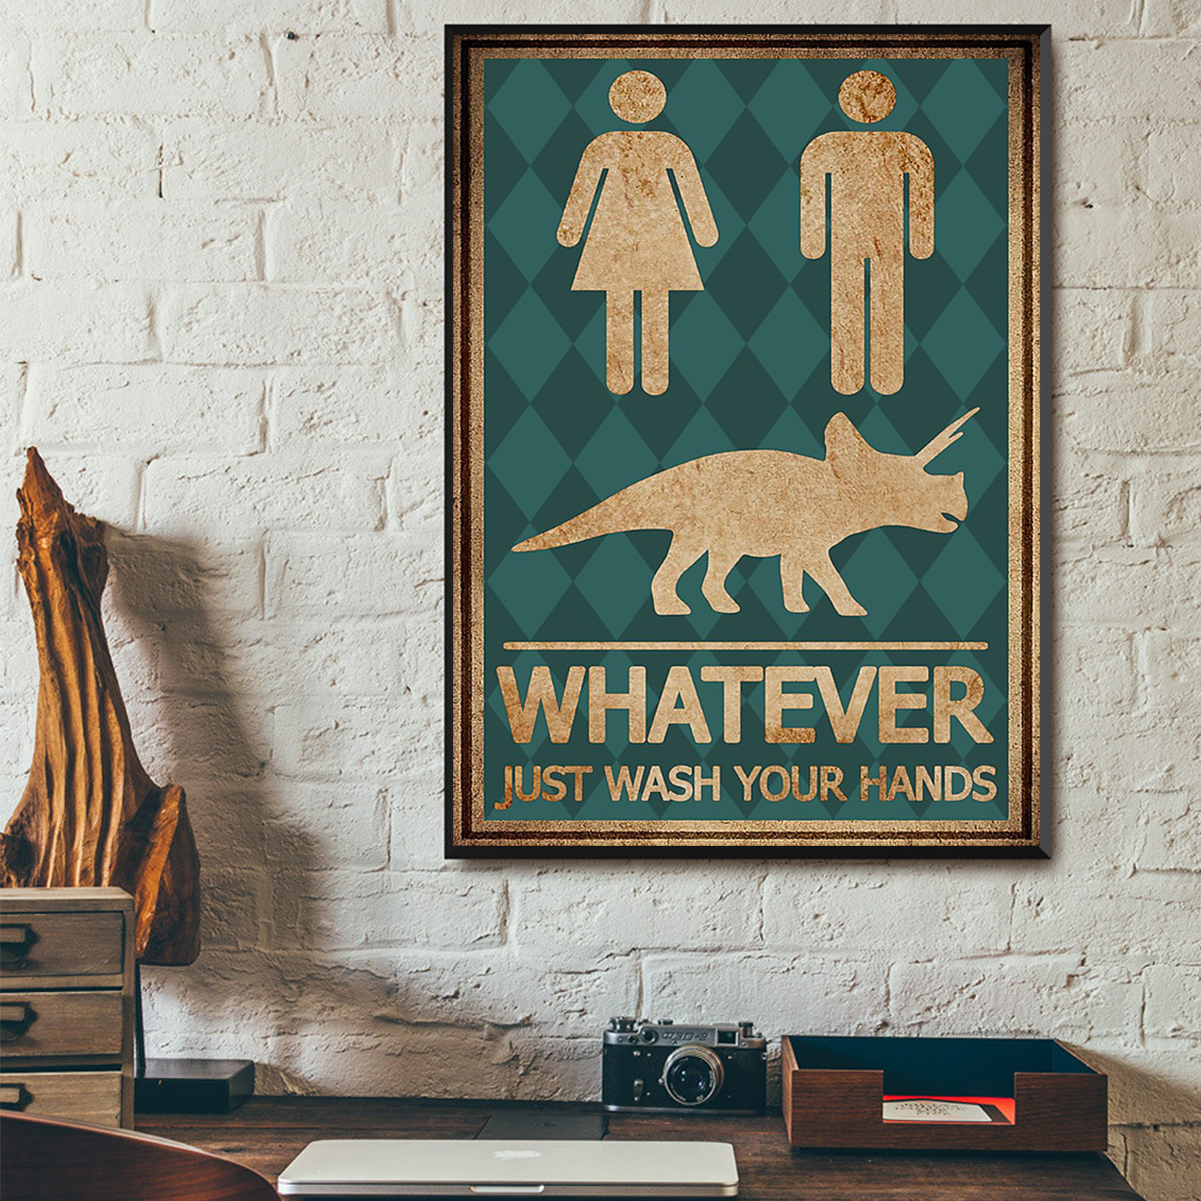 Whatever just wash your hands poster A1